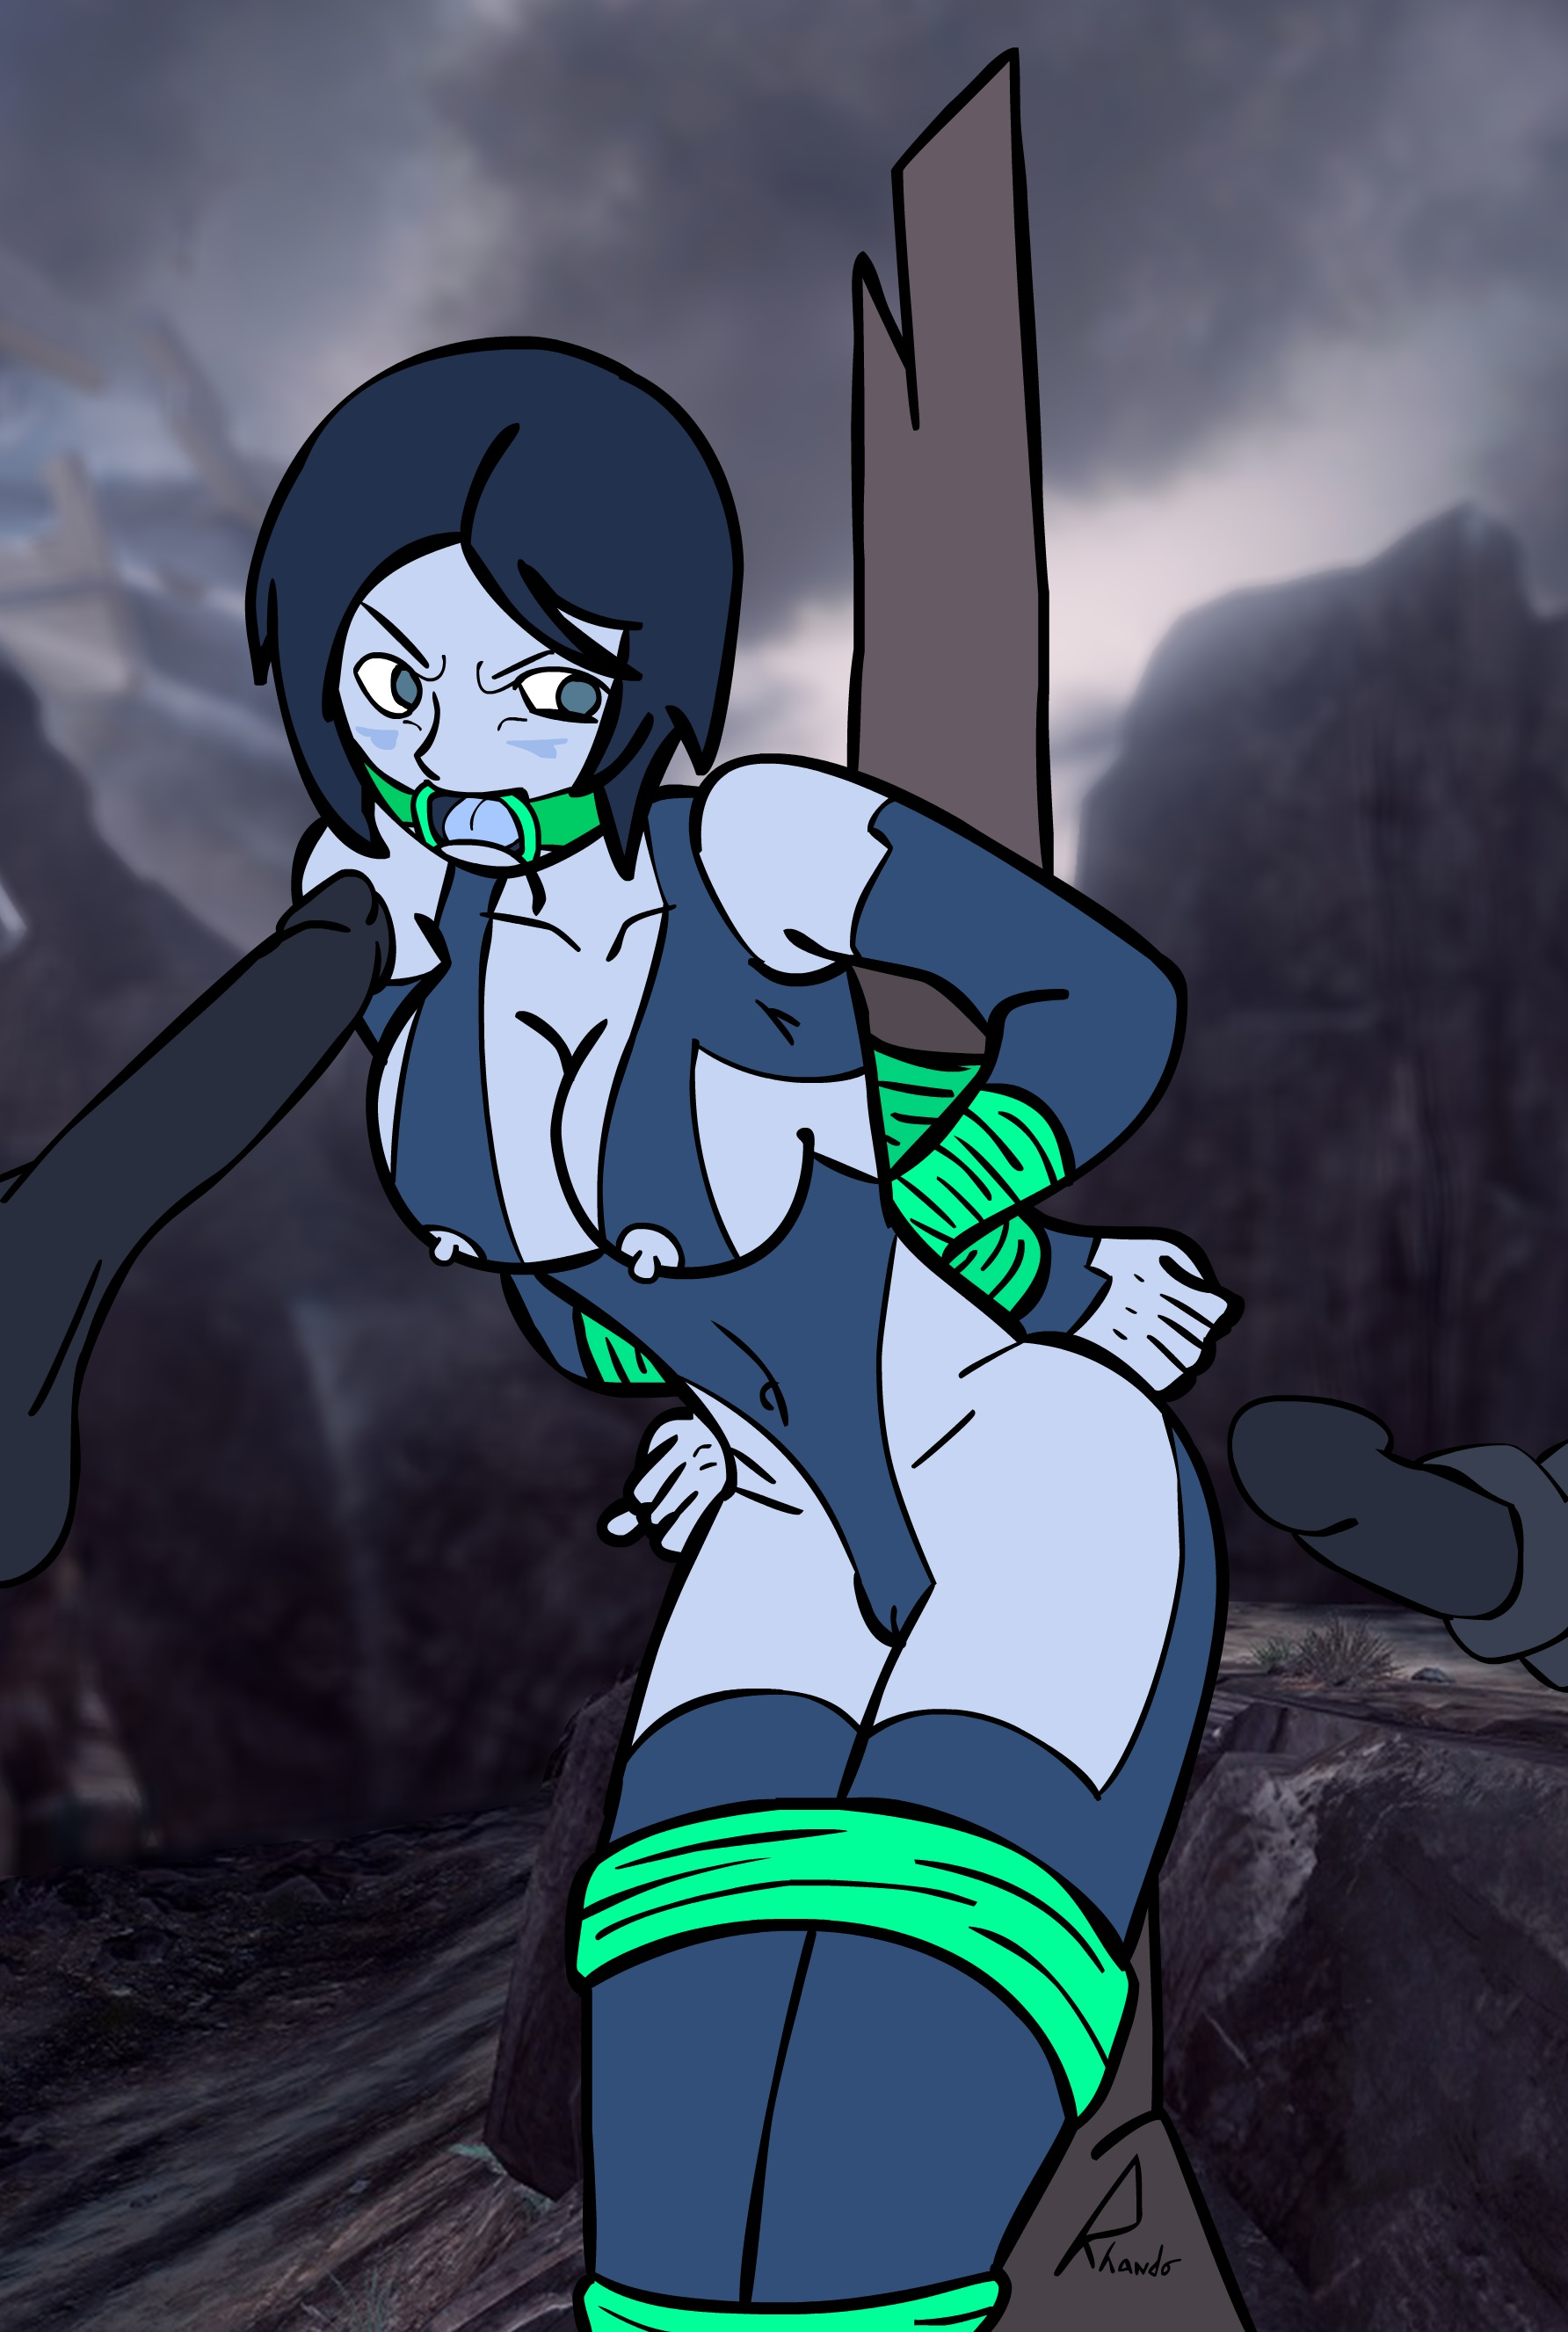 Halo cortana moving hentai images exposed streaming